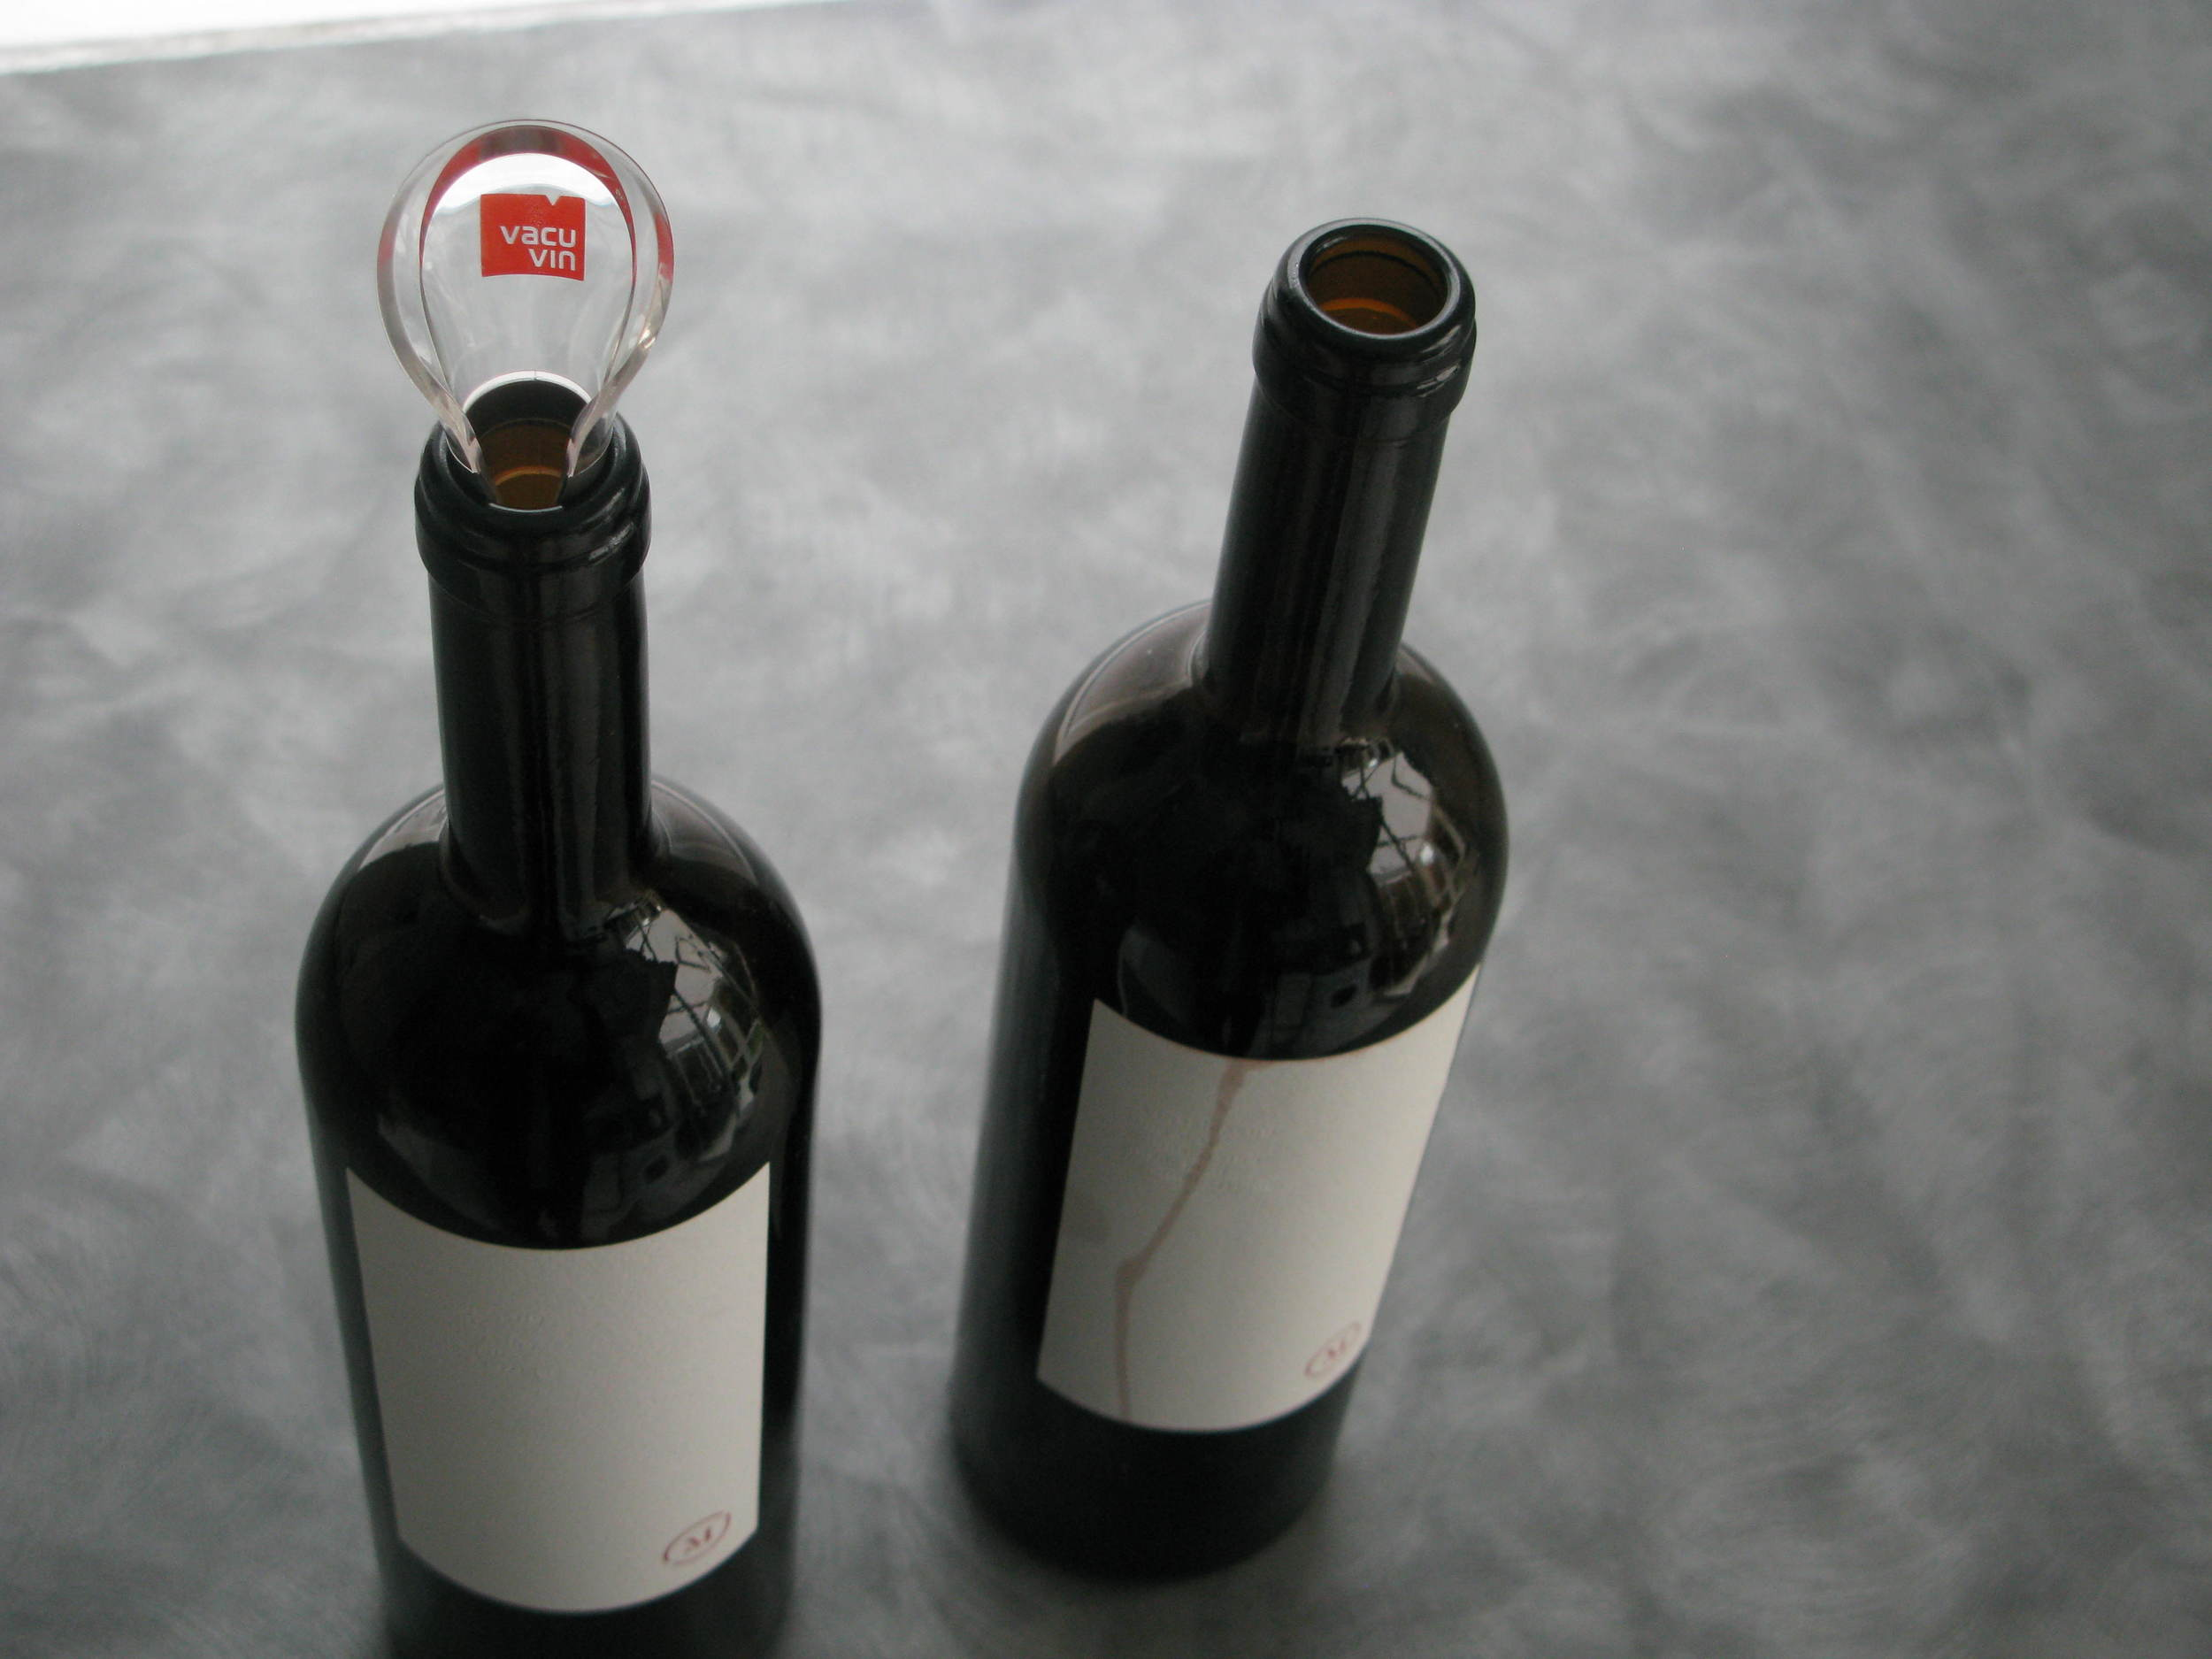 This red wine from Stina is great and the all-white label is smart... until red wine drips down it. With the Vacu Vin pourer in place, there were no drips